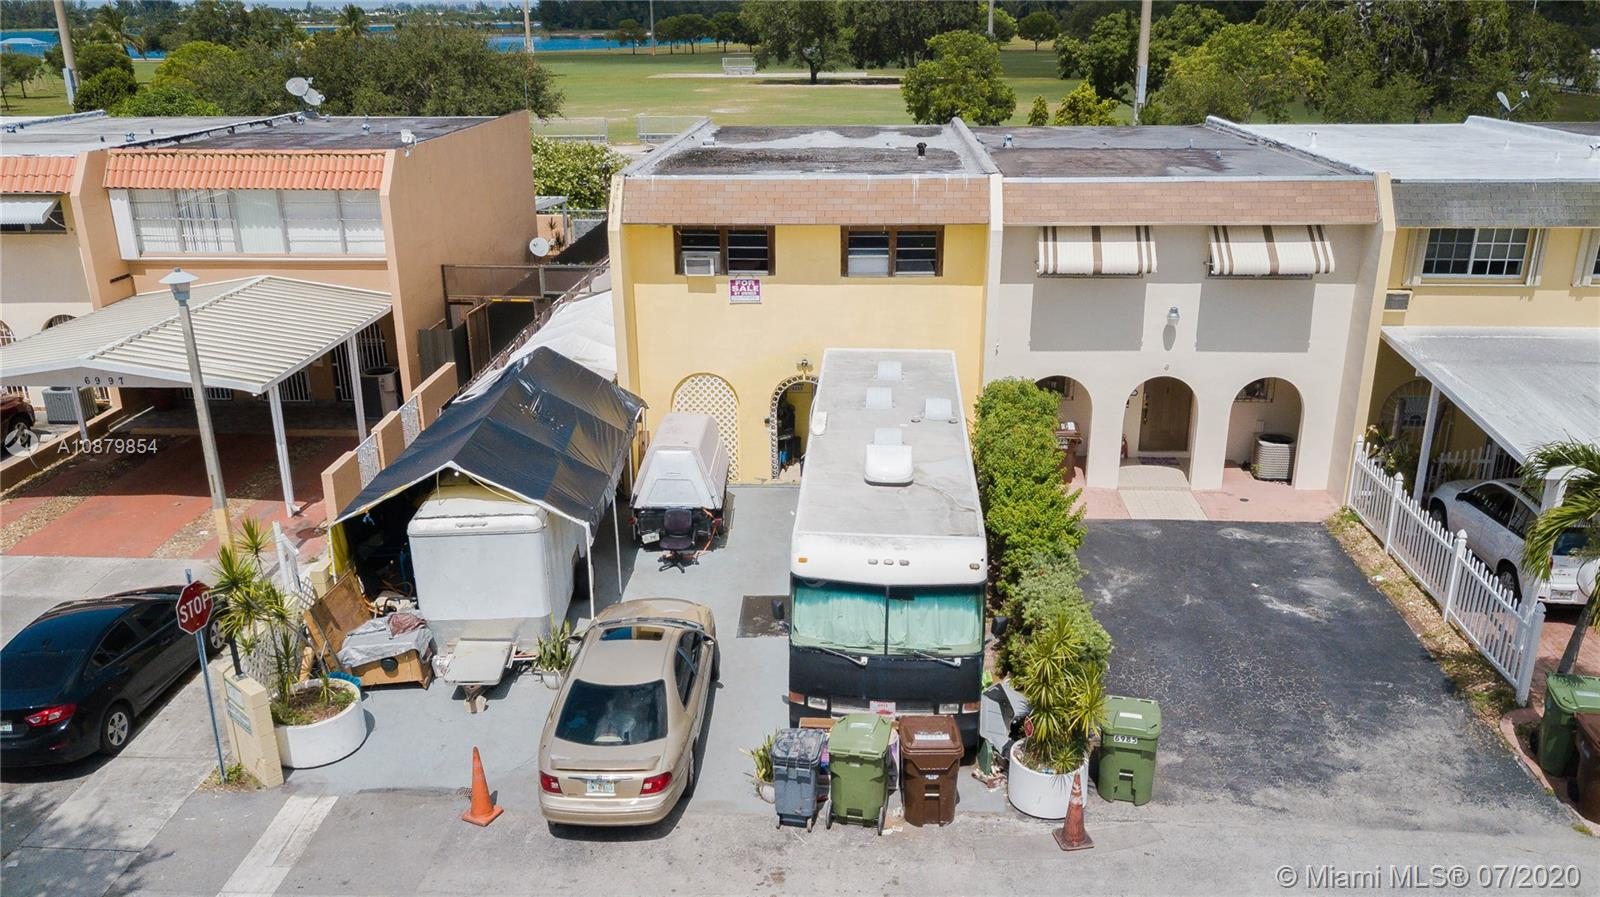 6995 W 2nd Ct  For Sale A10879854, FL